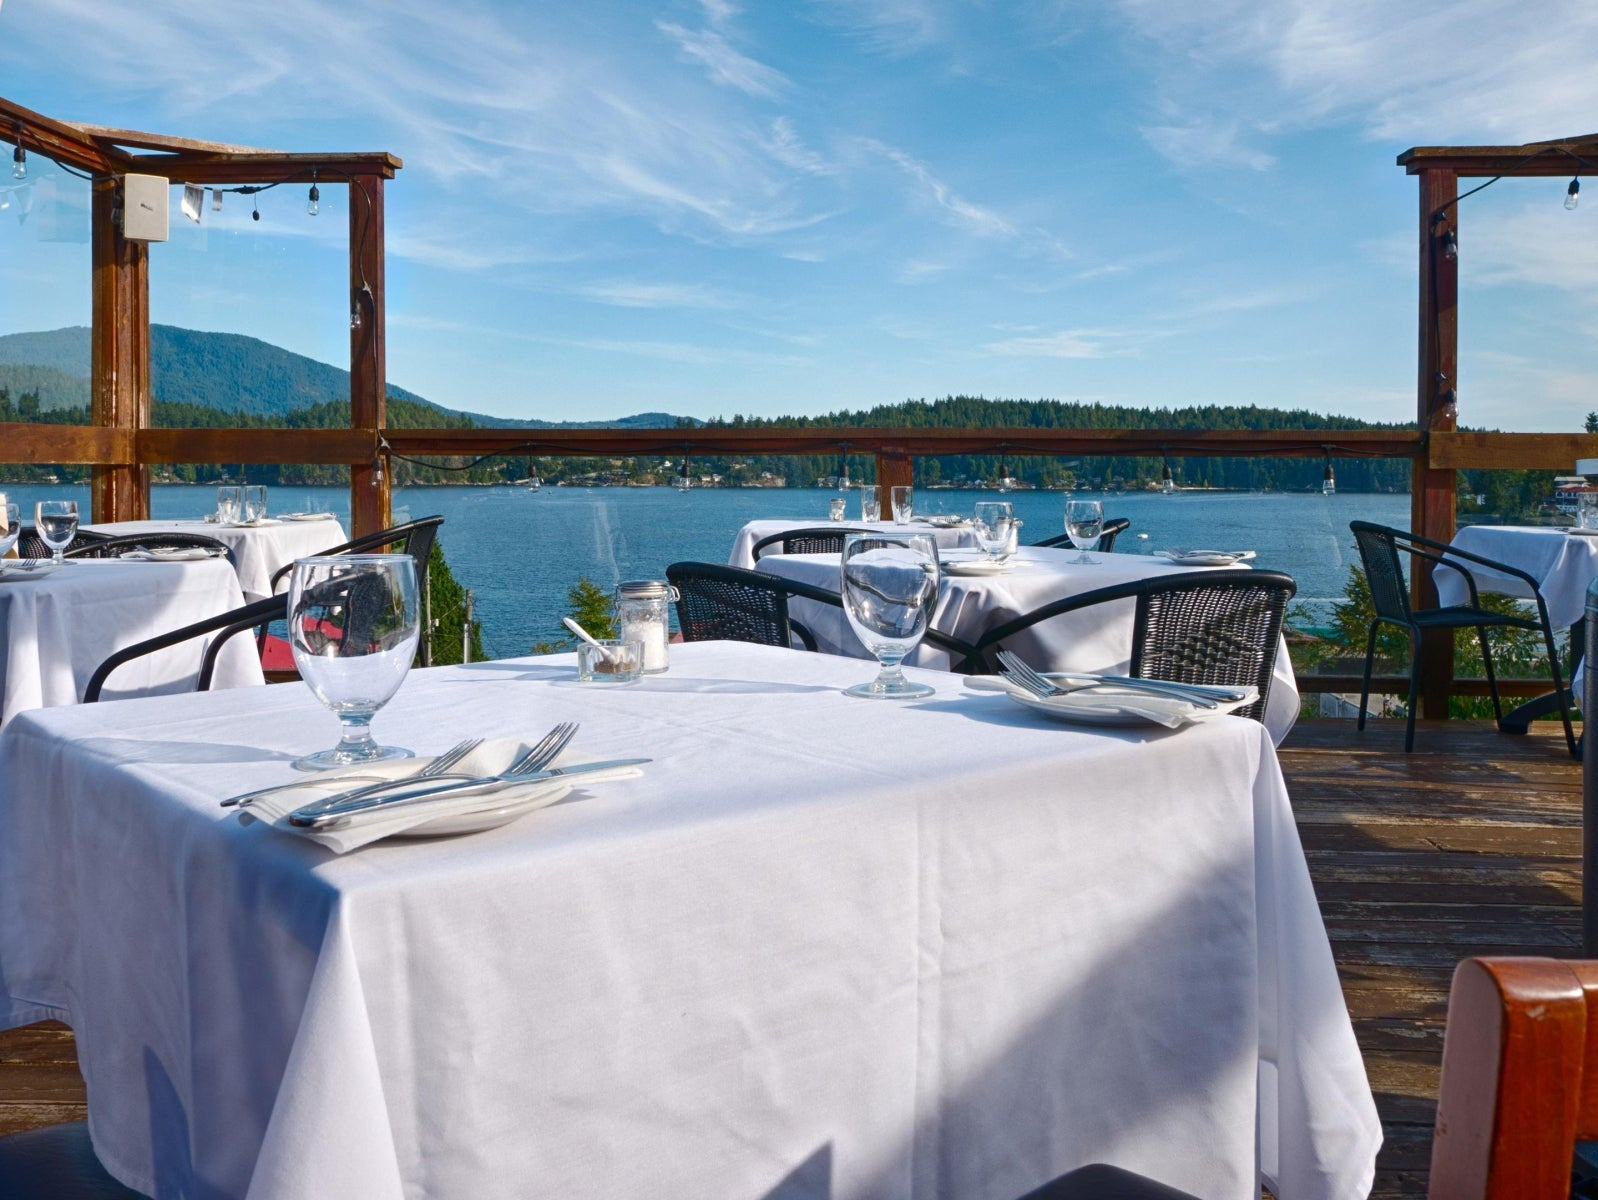 The Nova Kitchen 546 Gibsons Way, Gibsons BC V0N1V9 - Gibsons & Area COMM for sale(C8014726) #29